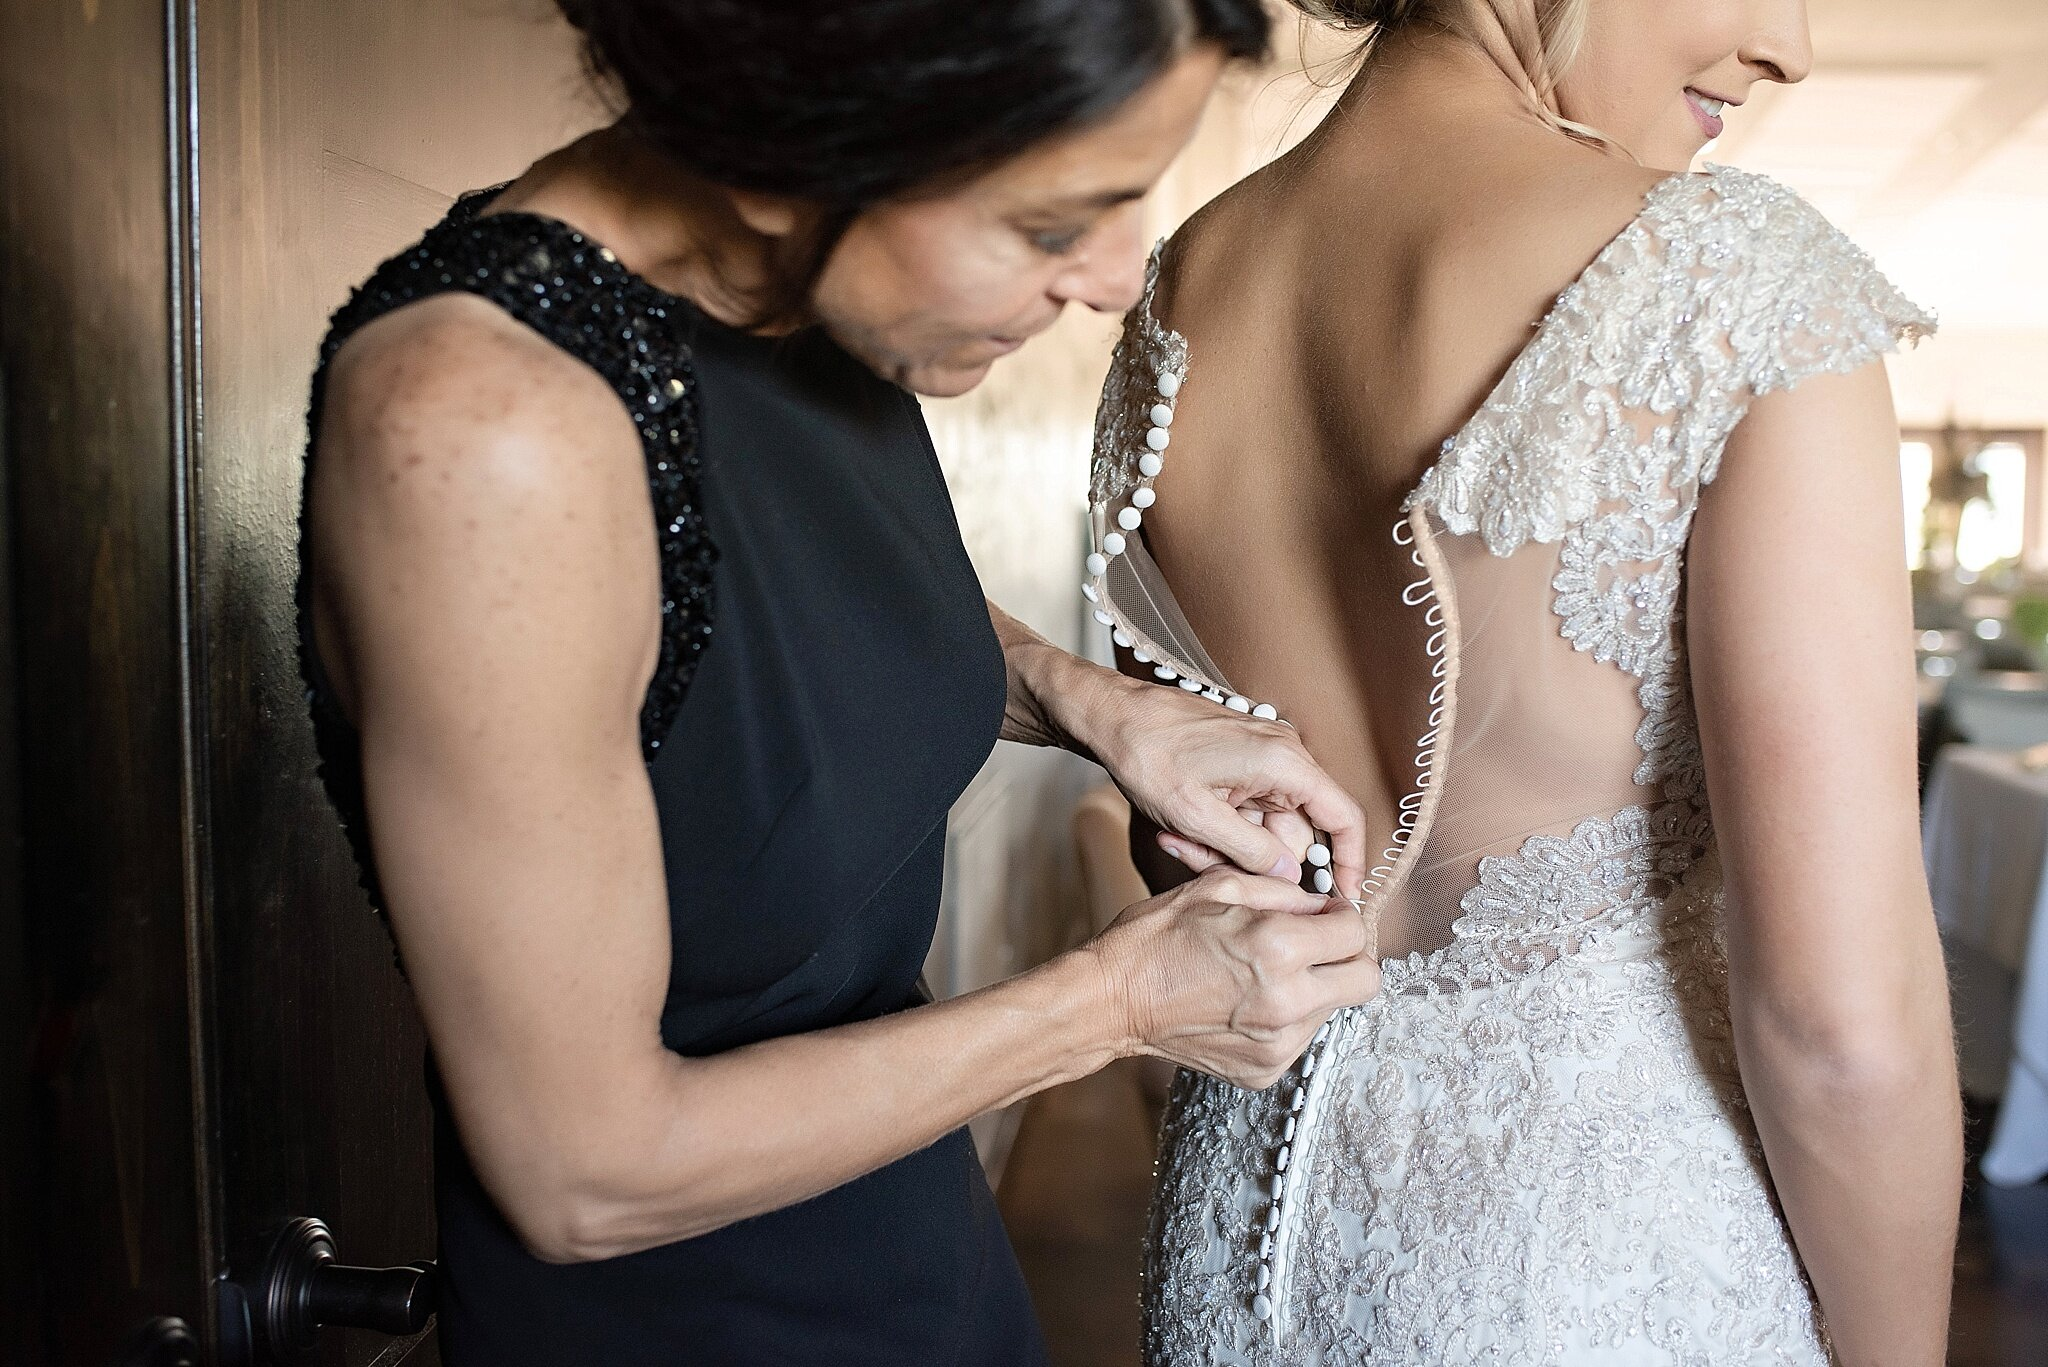 mother of the bride wears long black sleeveless formal gown to help bride get ready